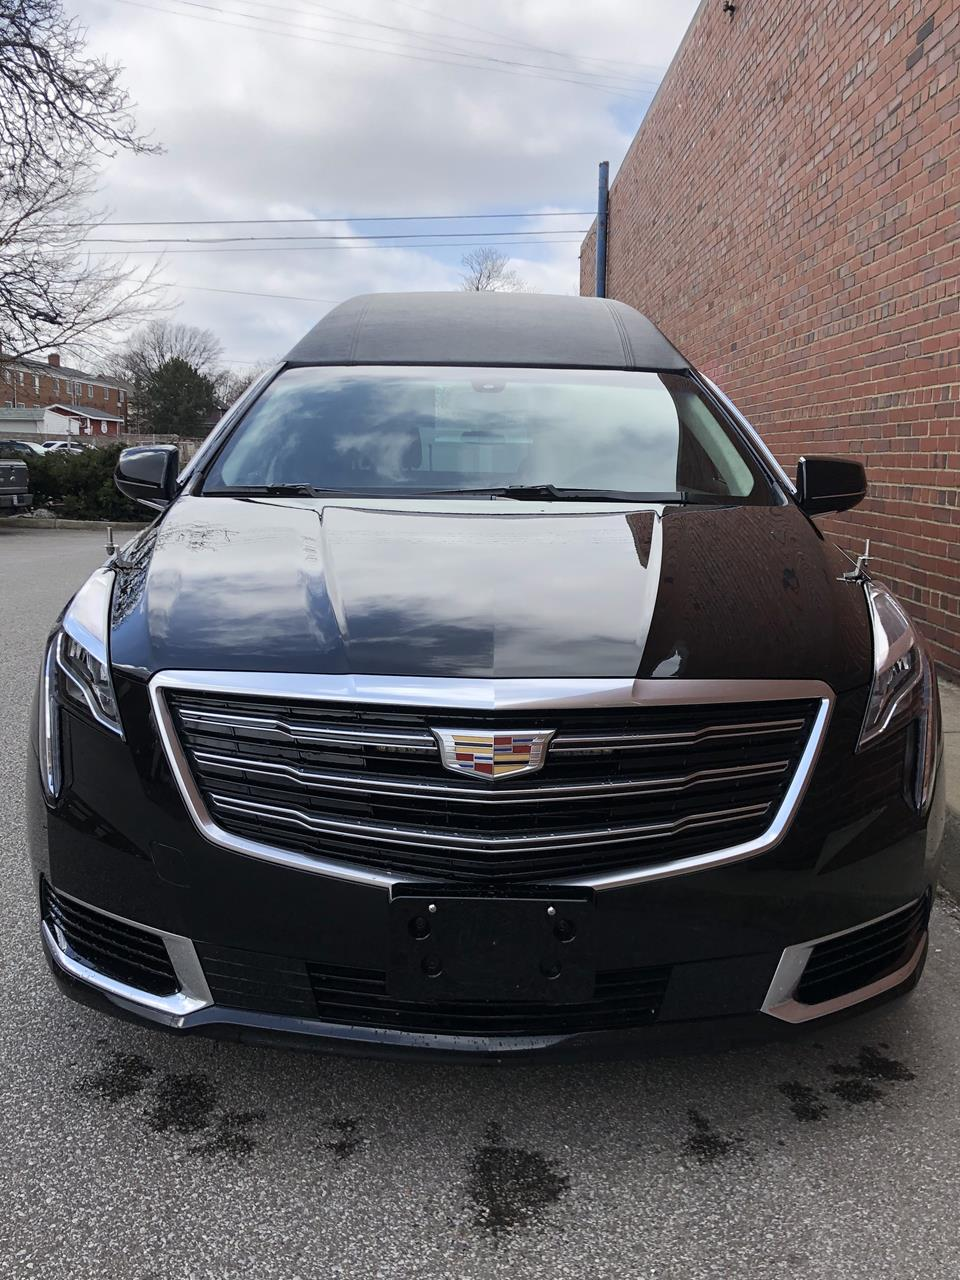 2019 Cadillac Eagle Kingsley Hearse 19 3